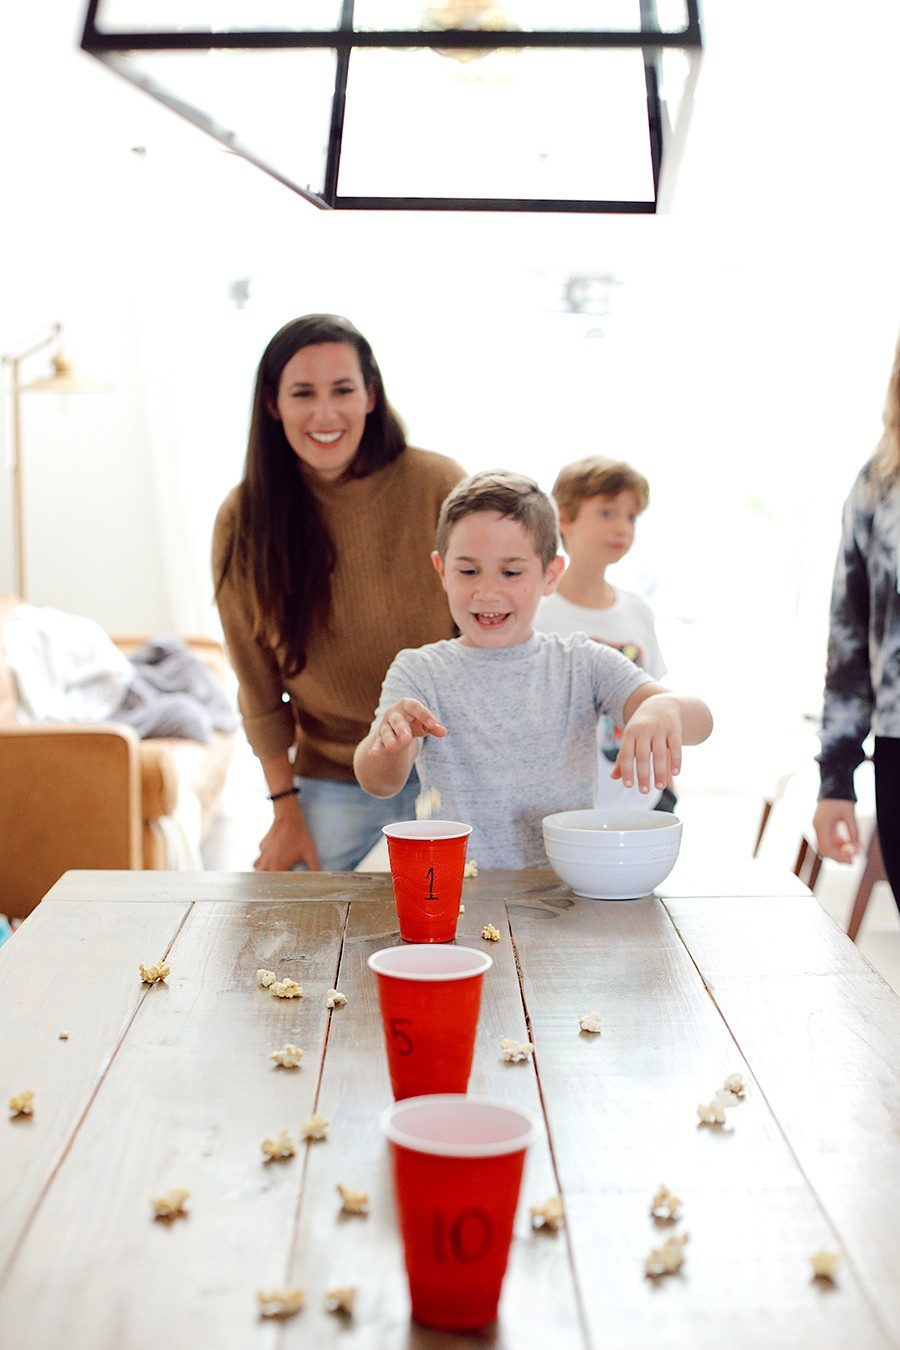 10 Popcorn Games for a Great Family Fun Night | Family Fun Night by popular Florida lifestyle blog, Fresh Mommy Blog: image of a mom and her kids tossing popcorn into red plastic cups.